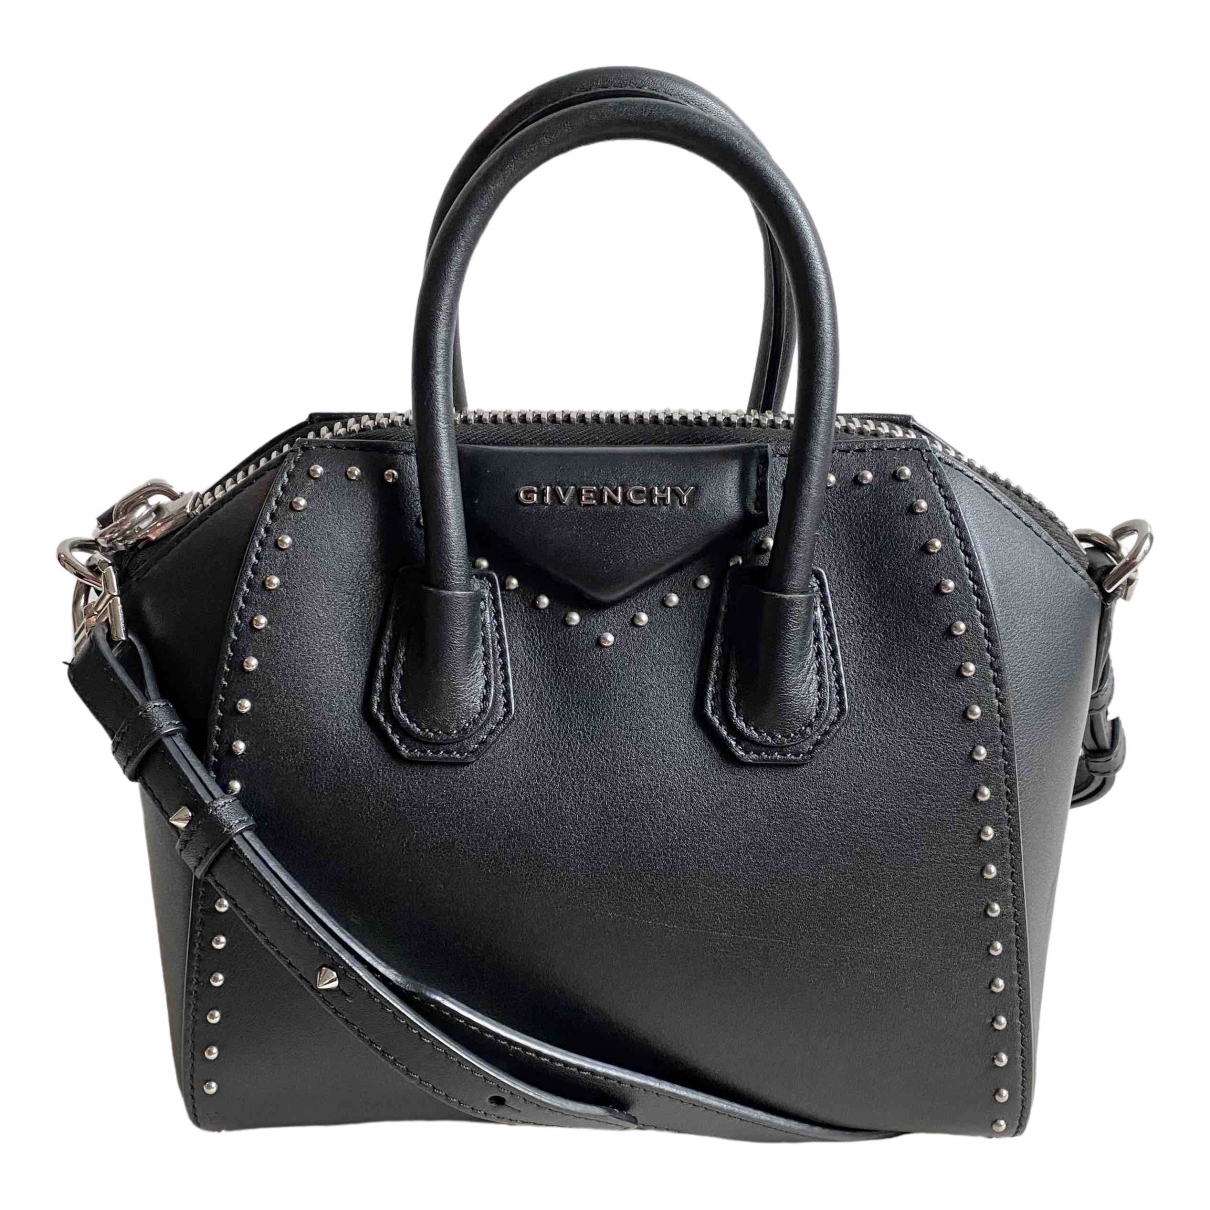 Givenchy Antigona Black Leather handbag for Women \N